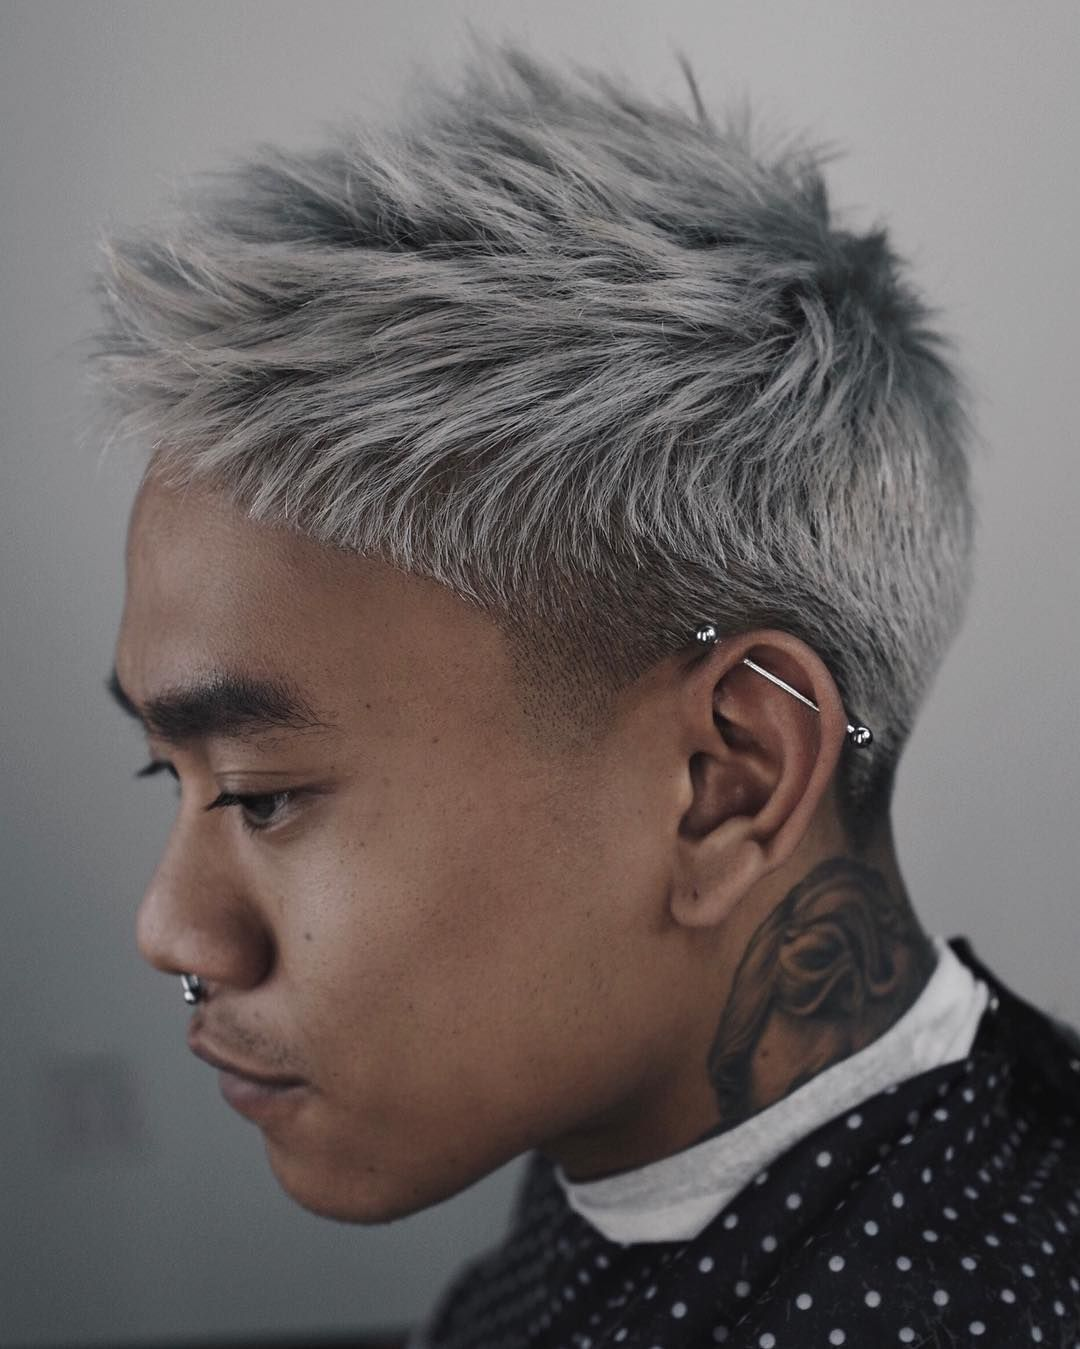 Hair Color Options For Men Asian Hair Asian Men Hairstyle Mens Hairstyles Short